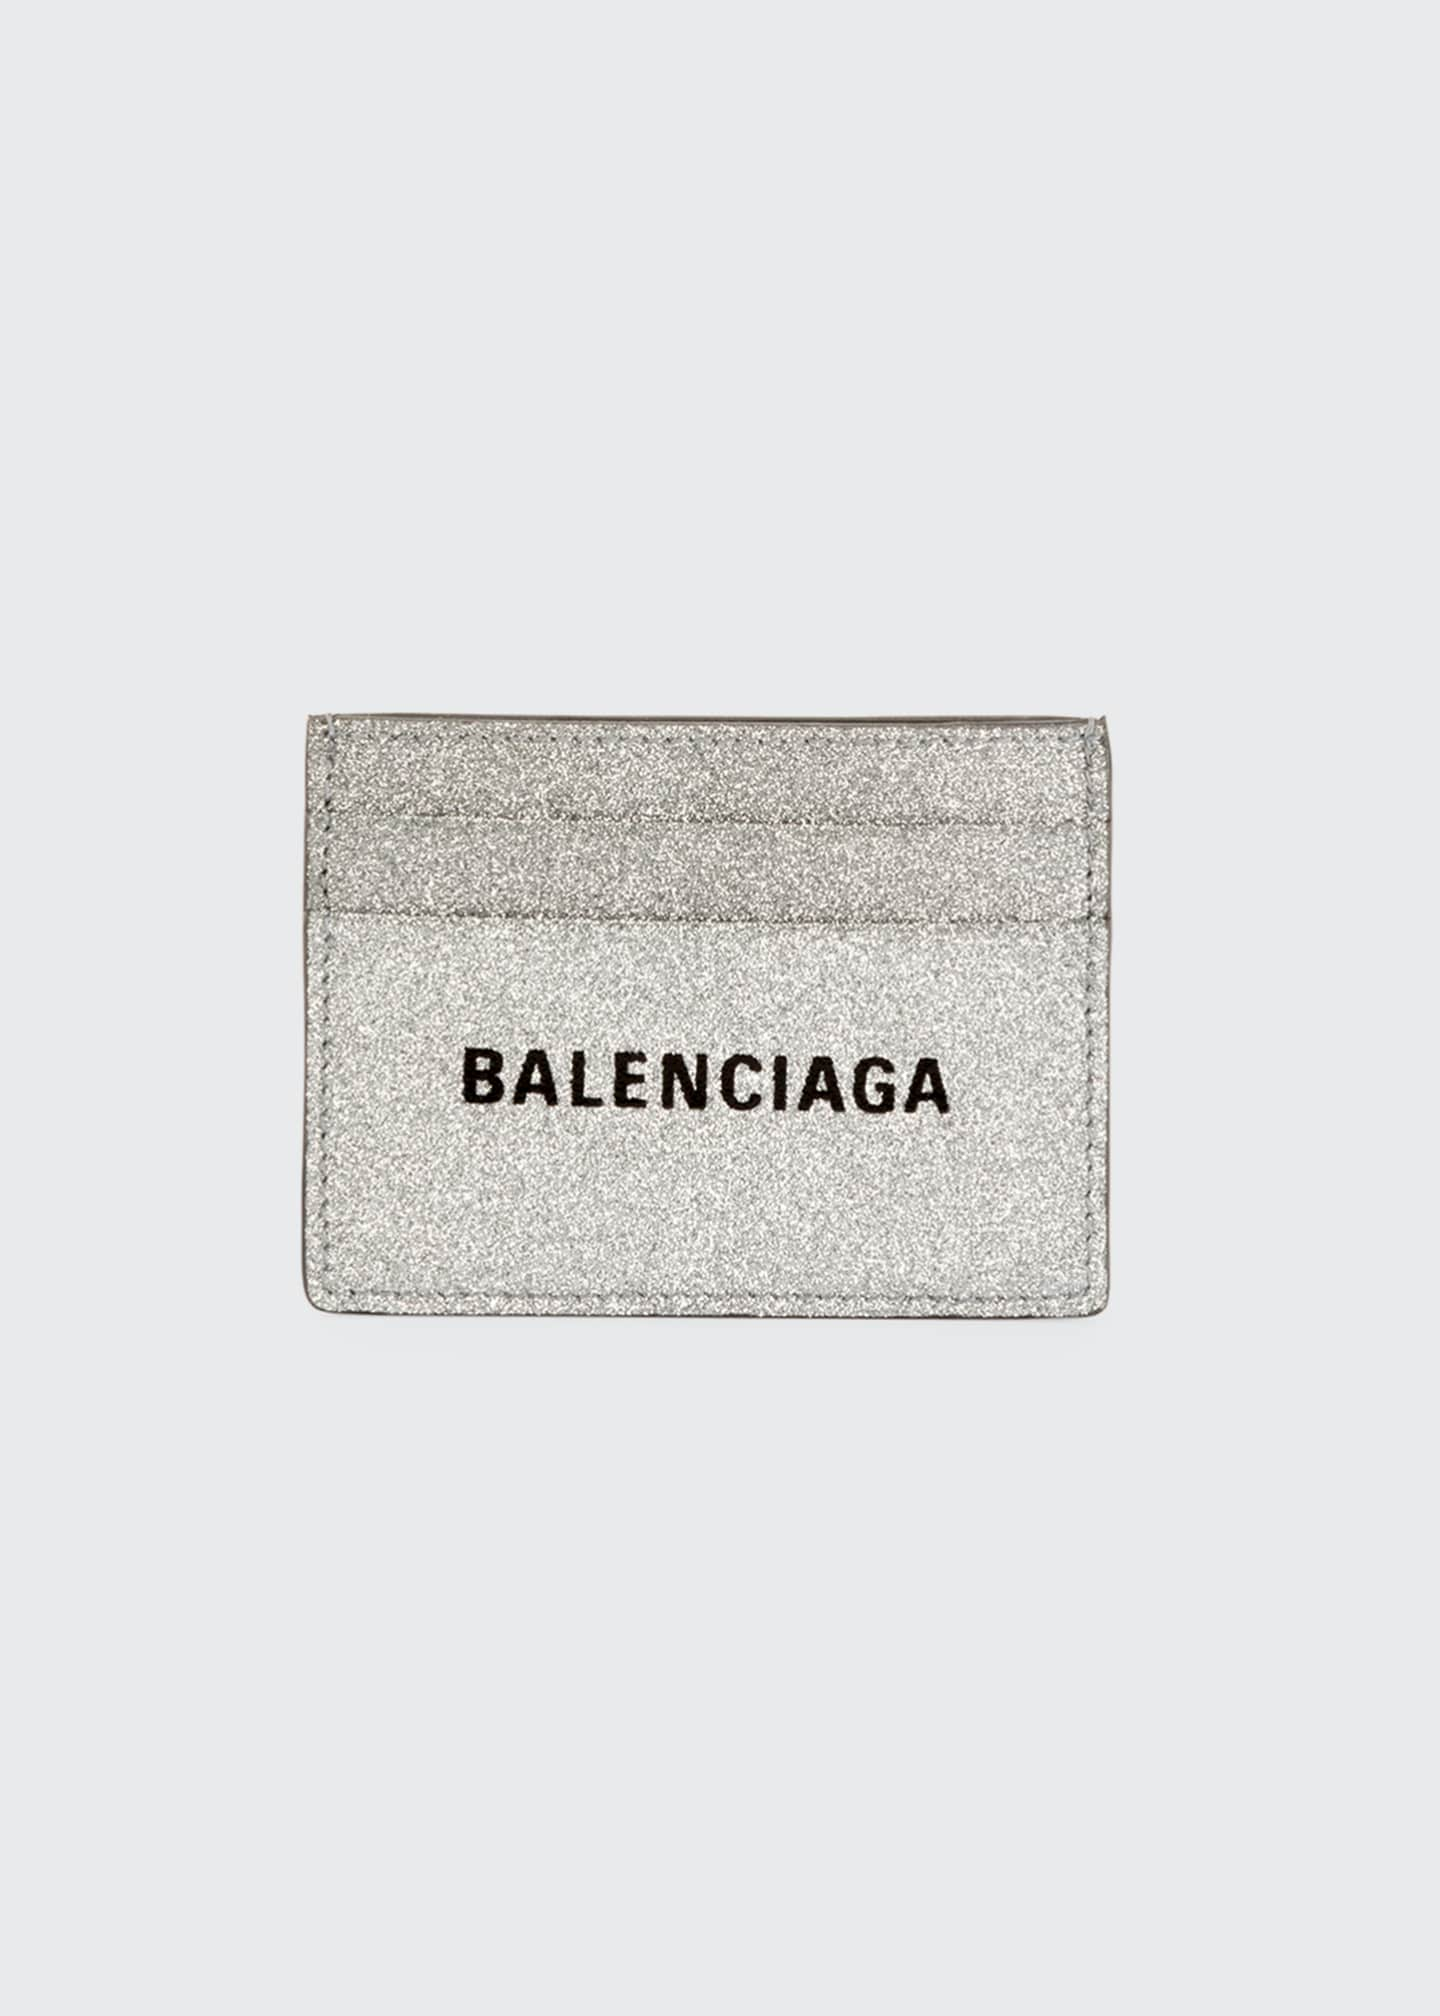 Balenciaga Everyday Large Glitter Card Case